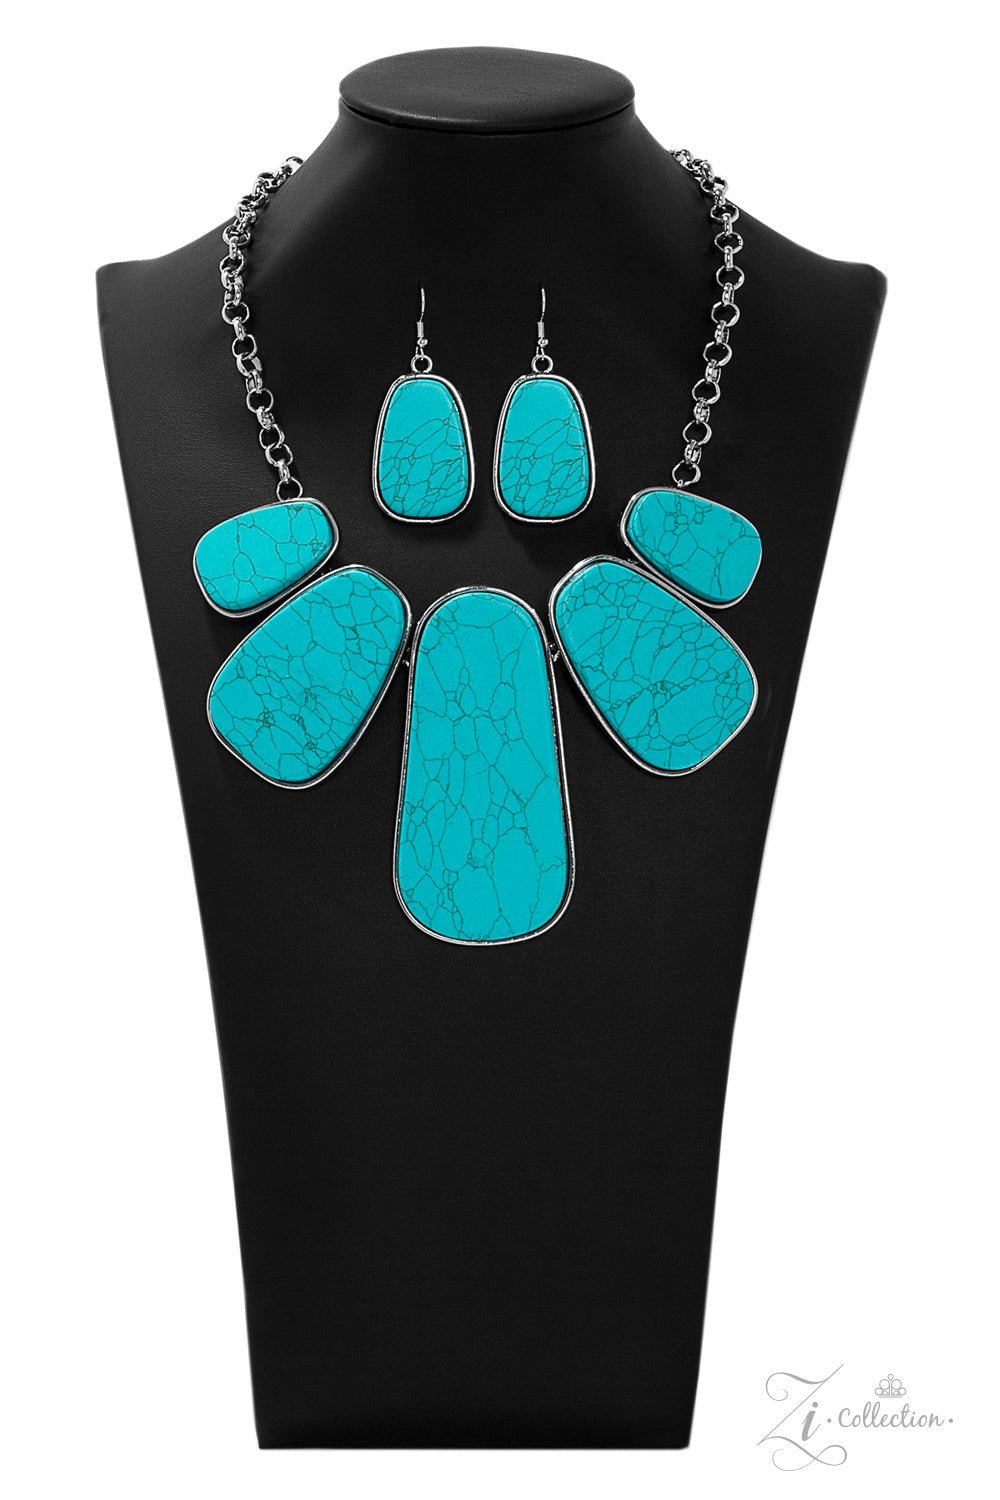 Monumental - Silver with Large Oblong Turquoise Necklace - 2019 Zi Collection